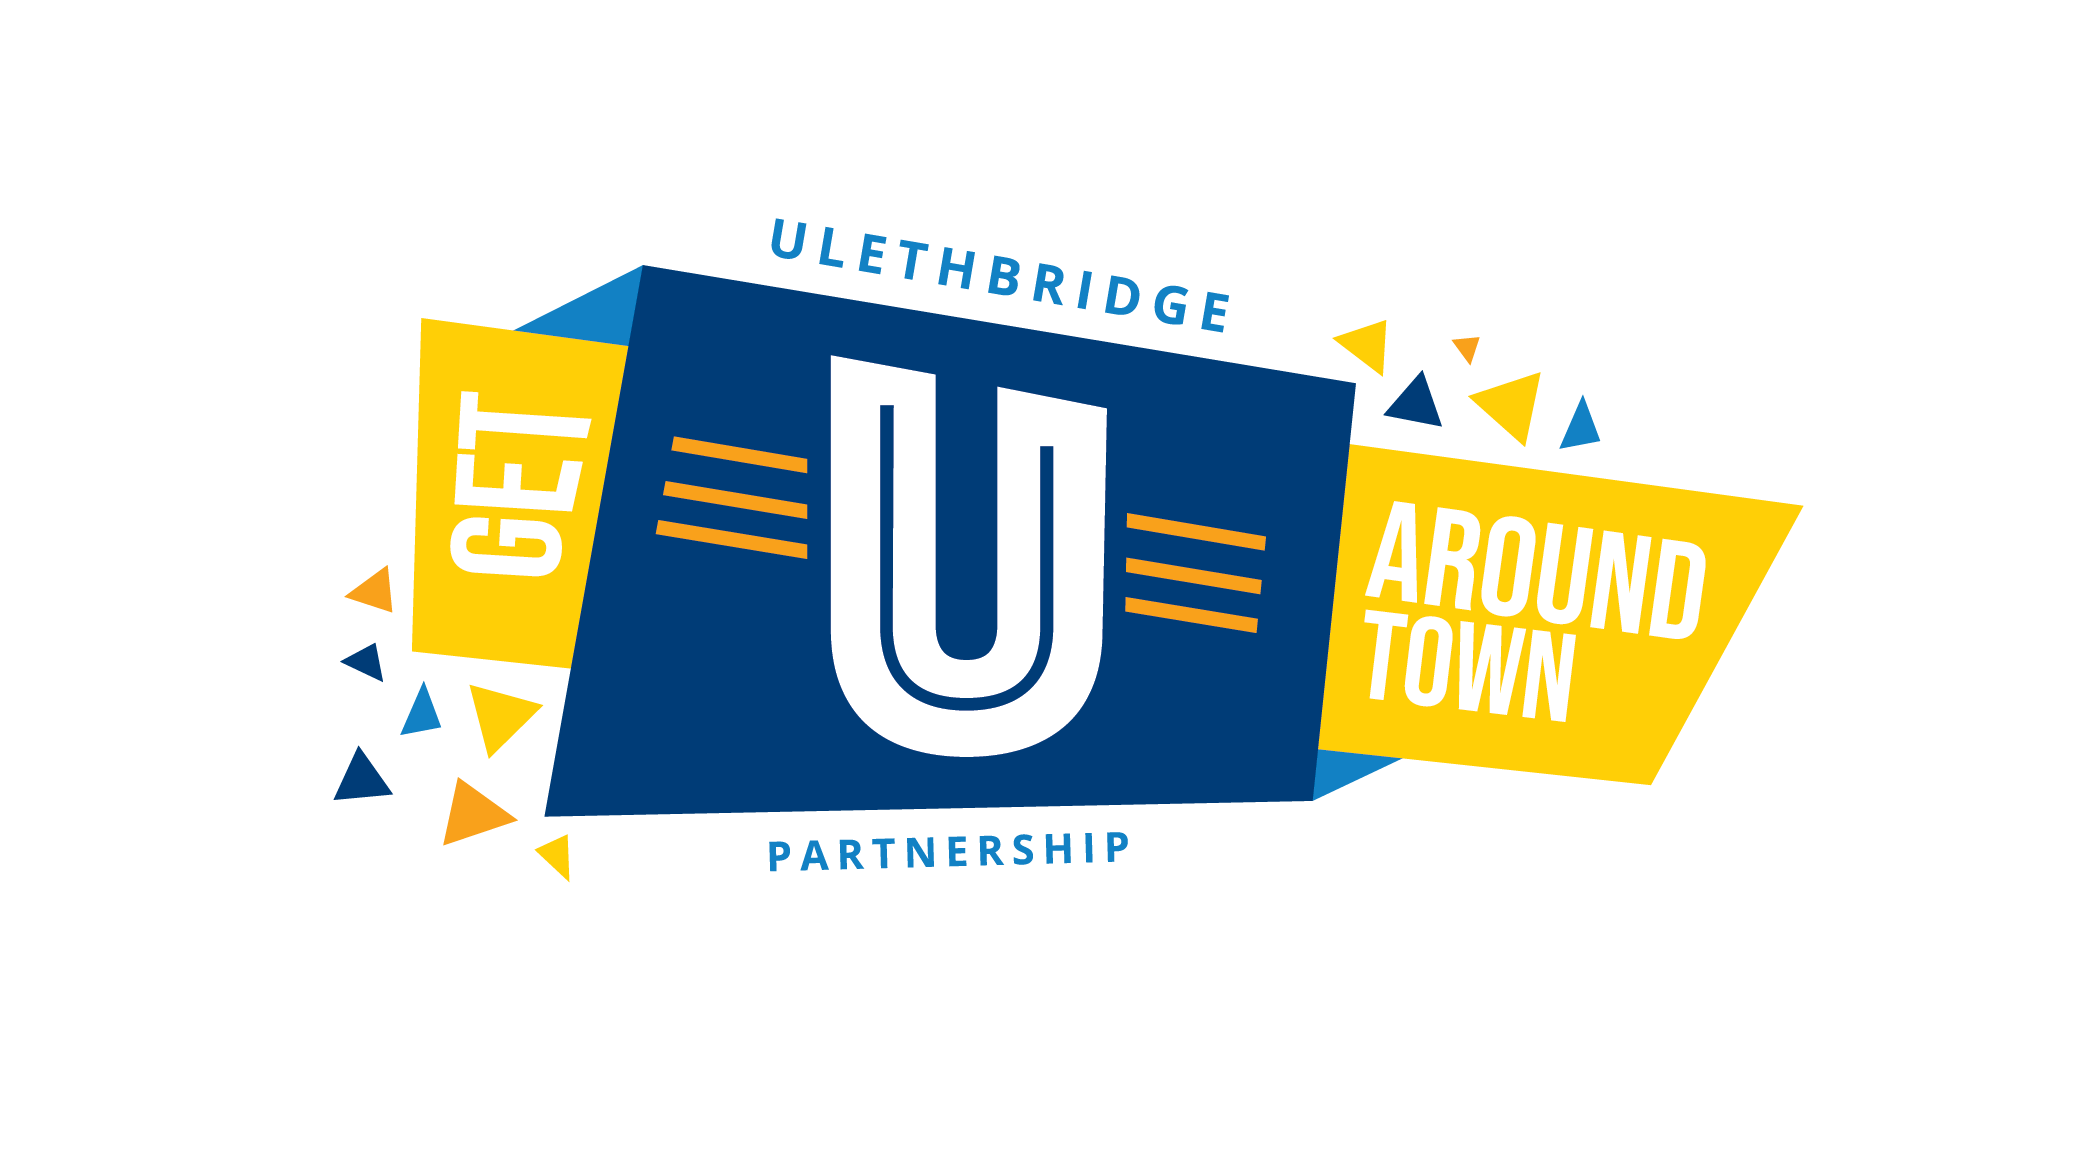 get you around town logo